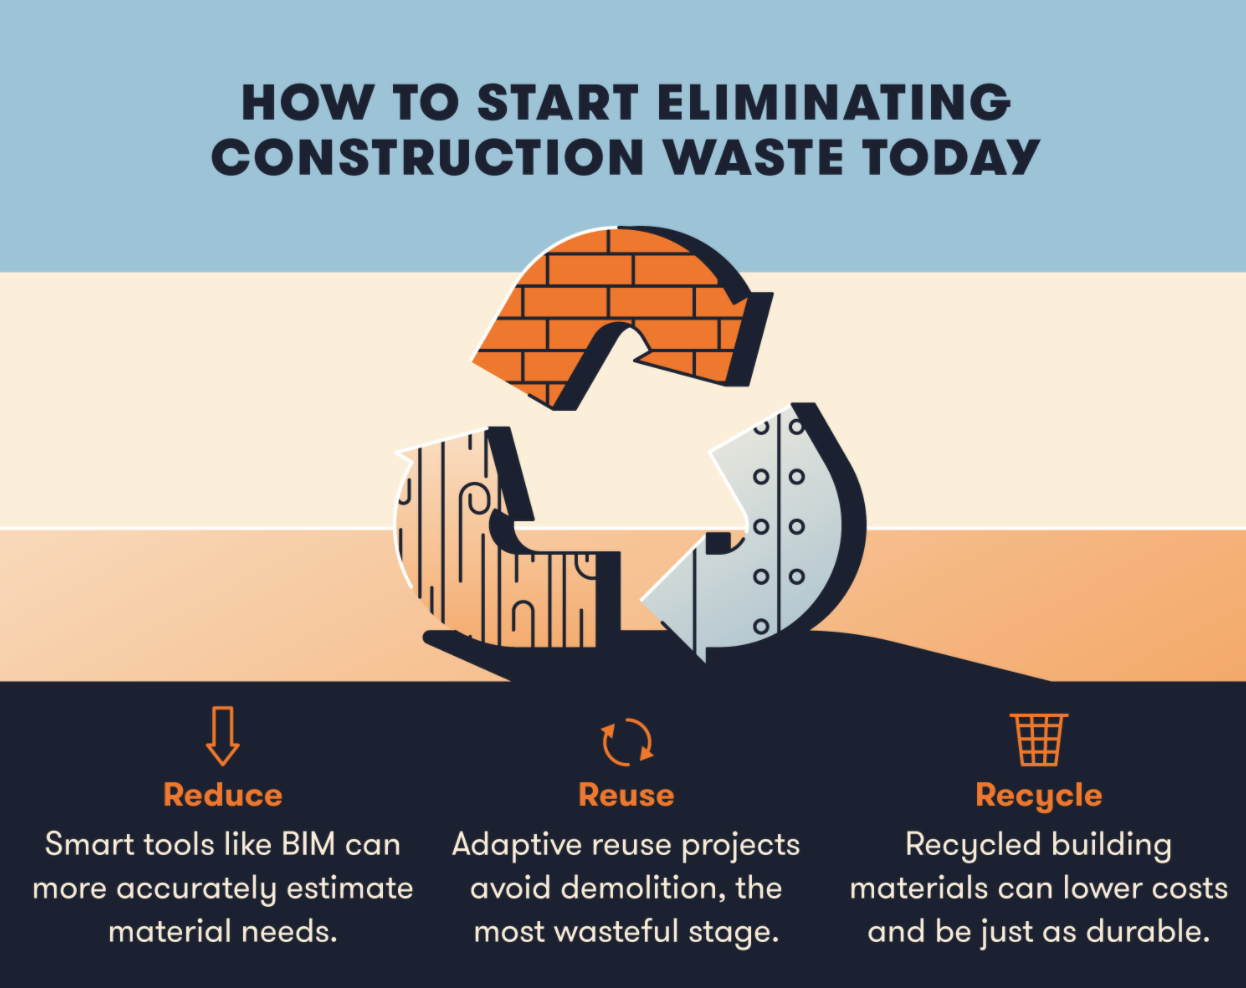 How to Start Eliminating Construction Waste Today